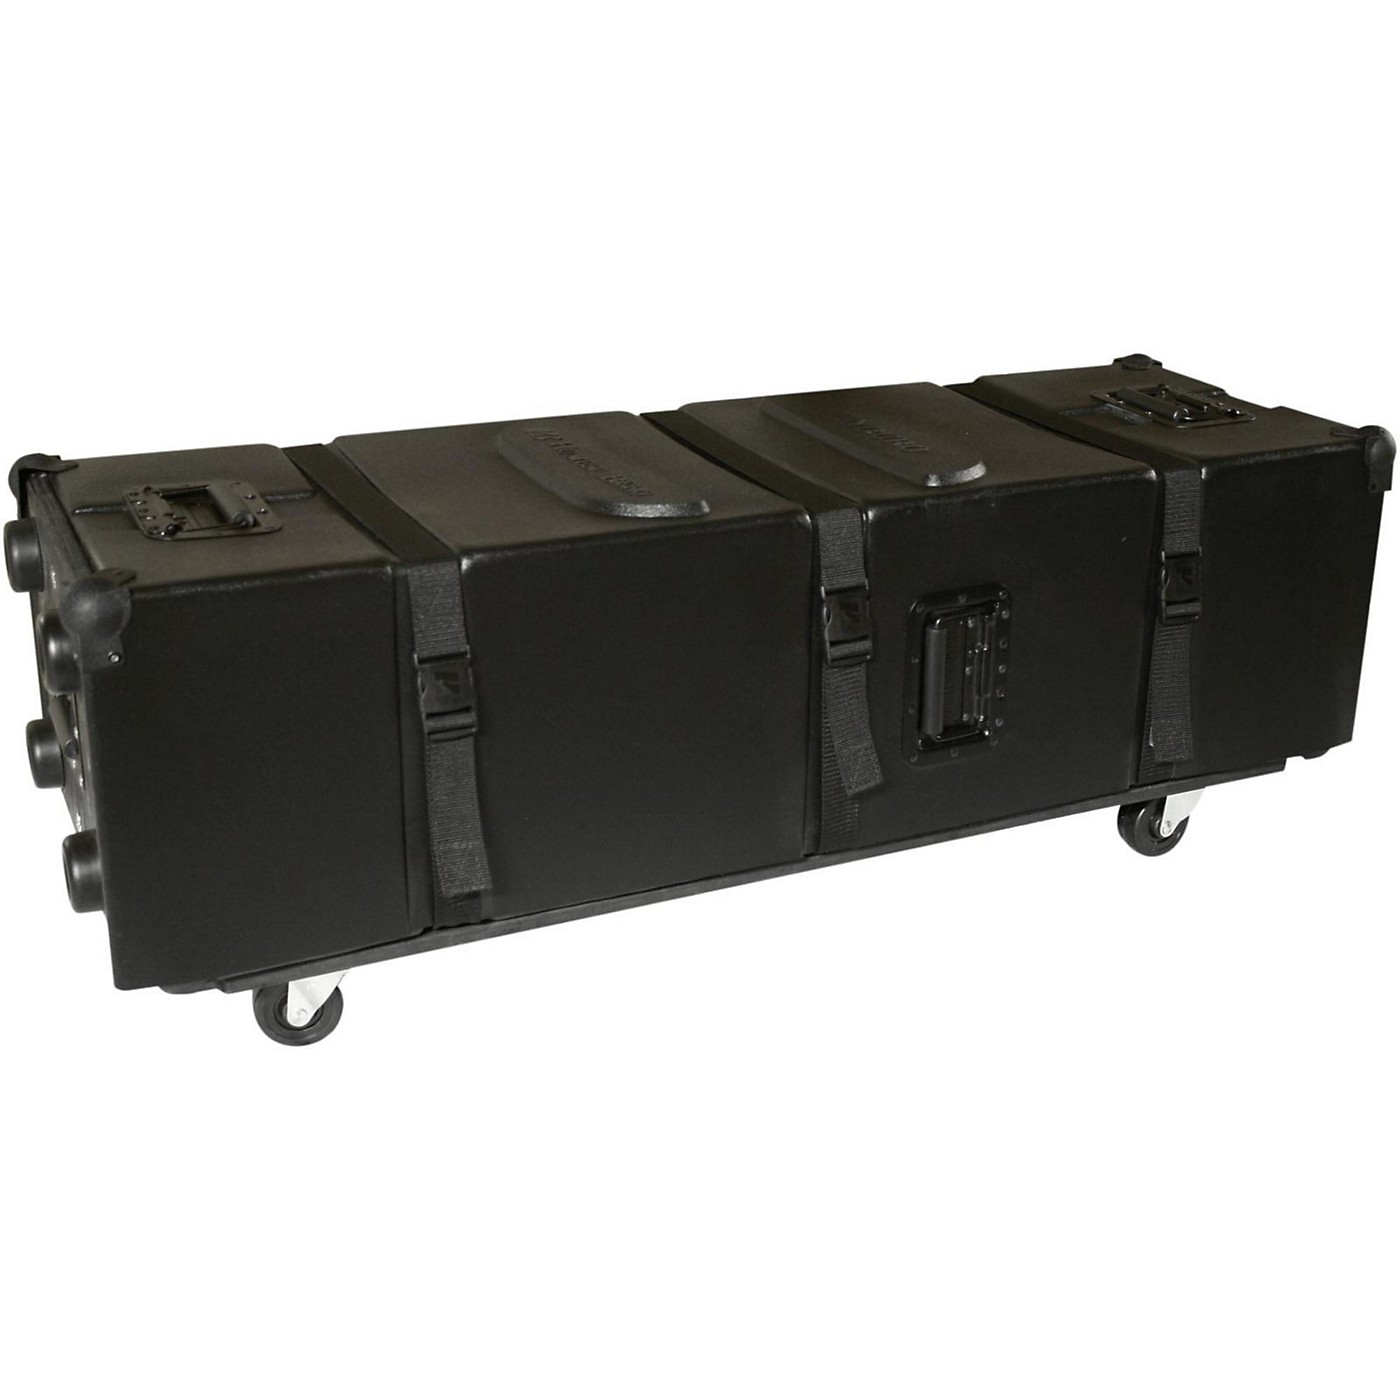 Humes & Berg Enduro Hardware Case with Casters on the Long Side thumbnail